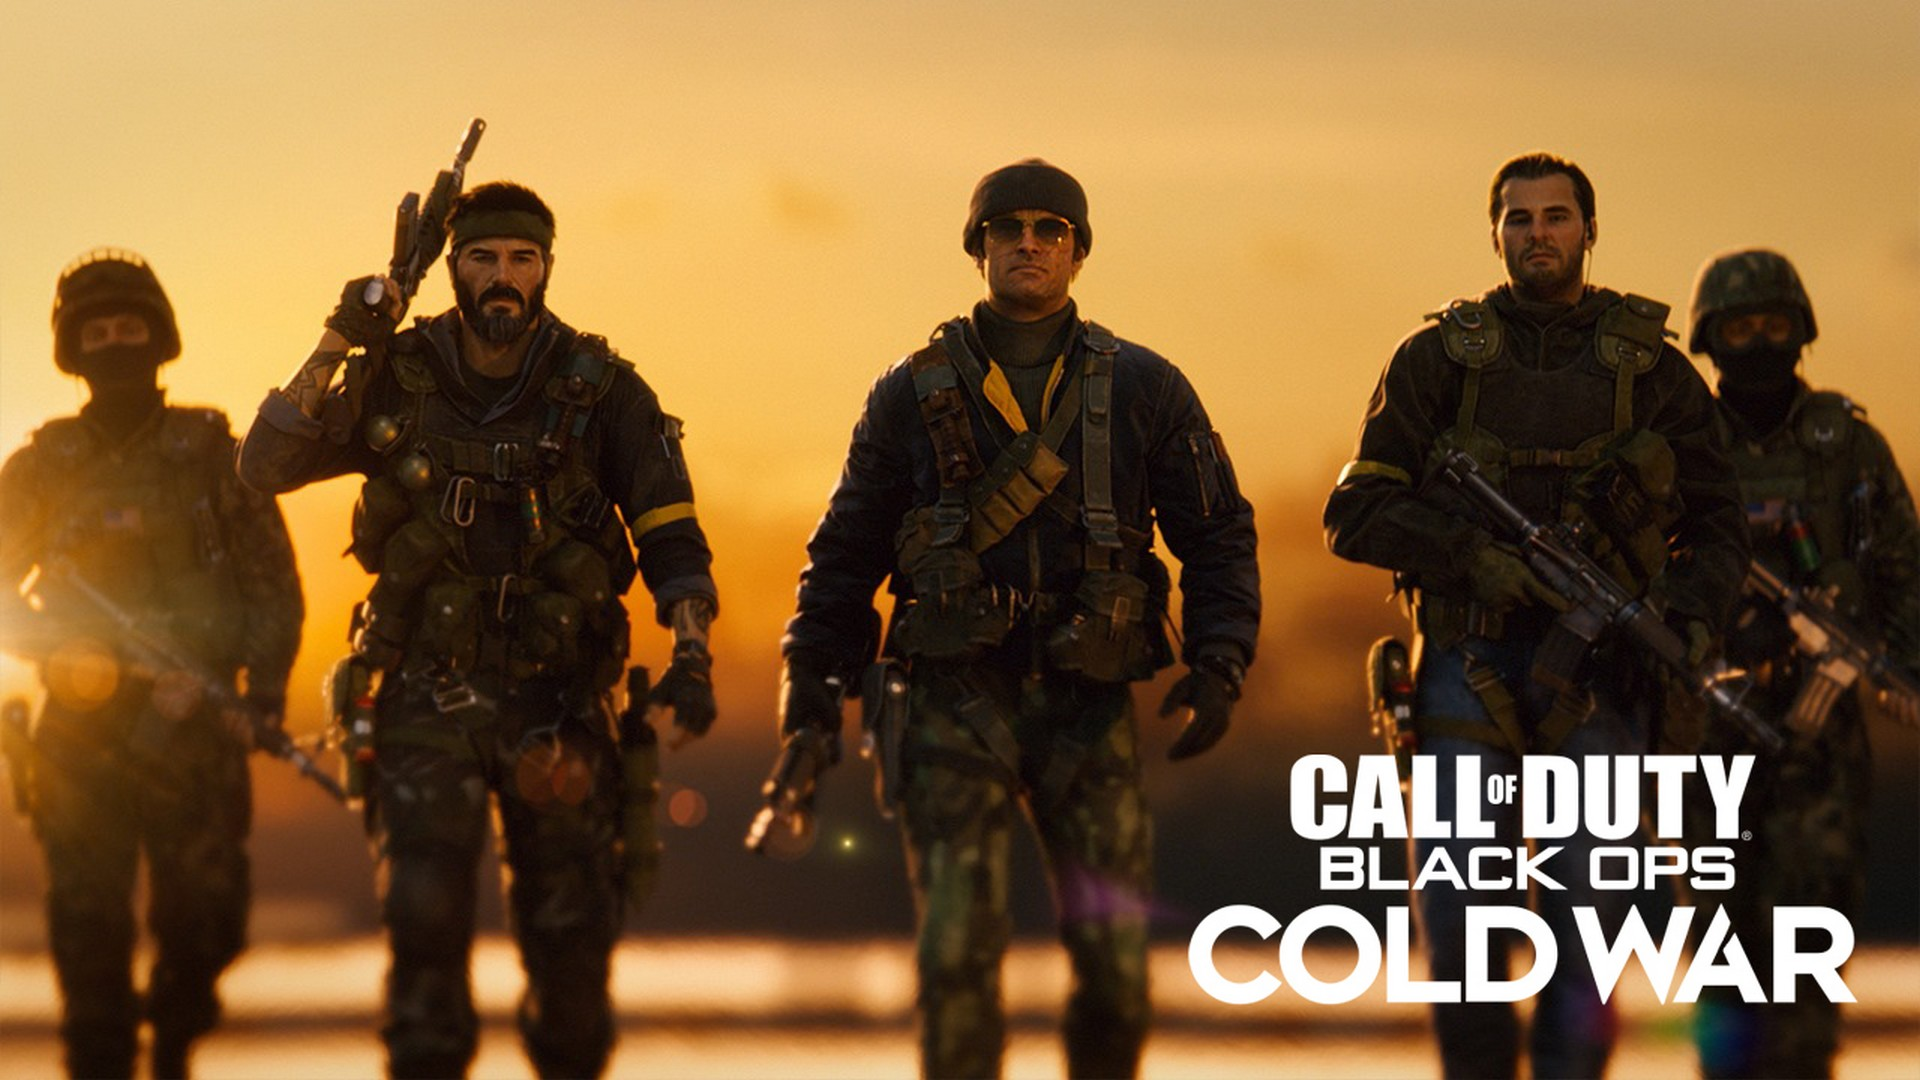 Call of Duty: Black Ops Cold War – Launch Trailer